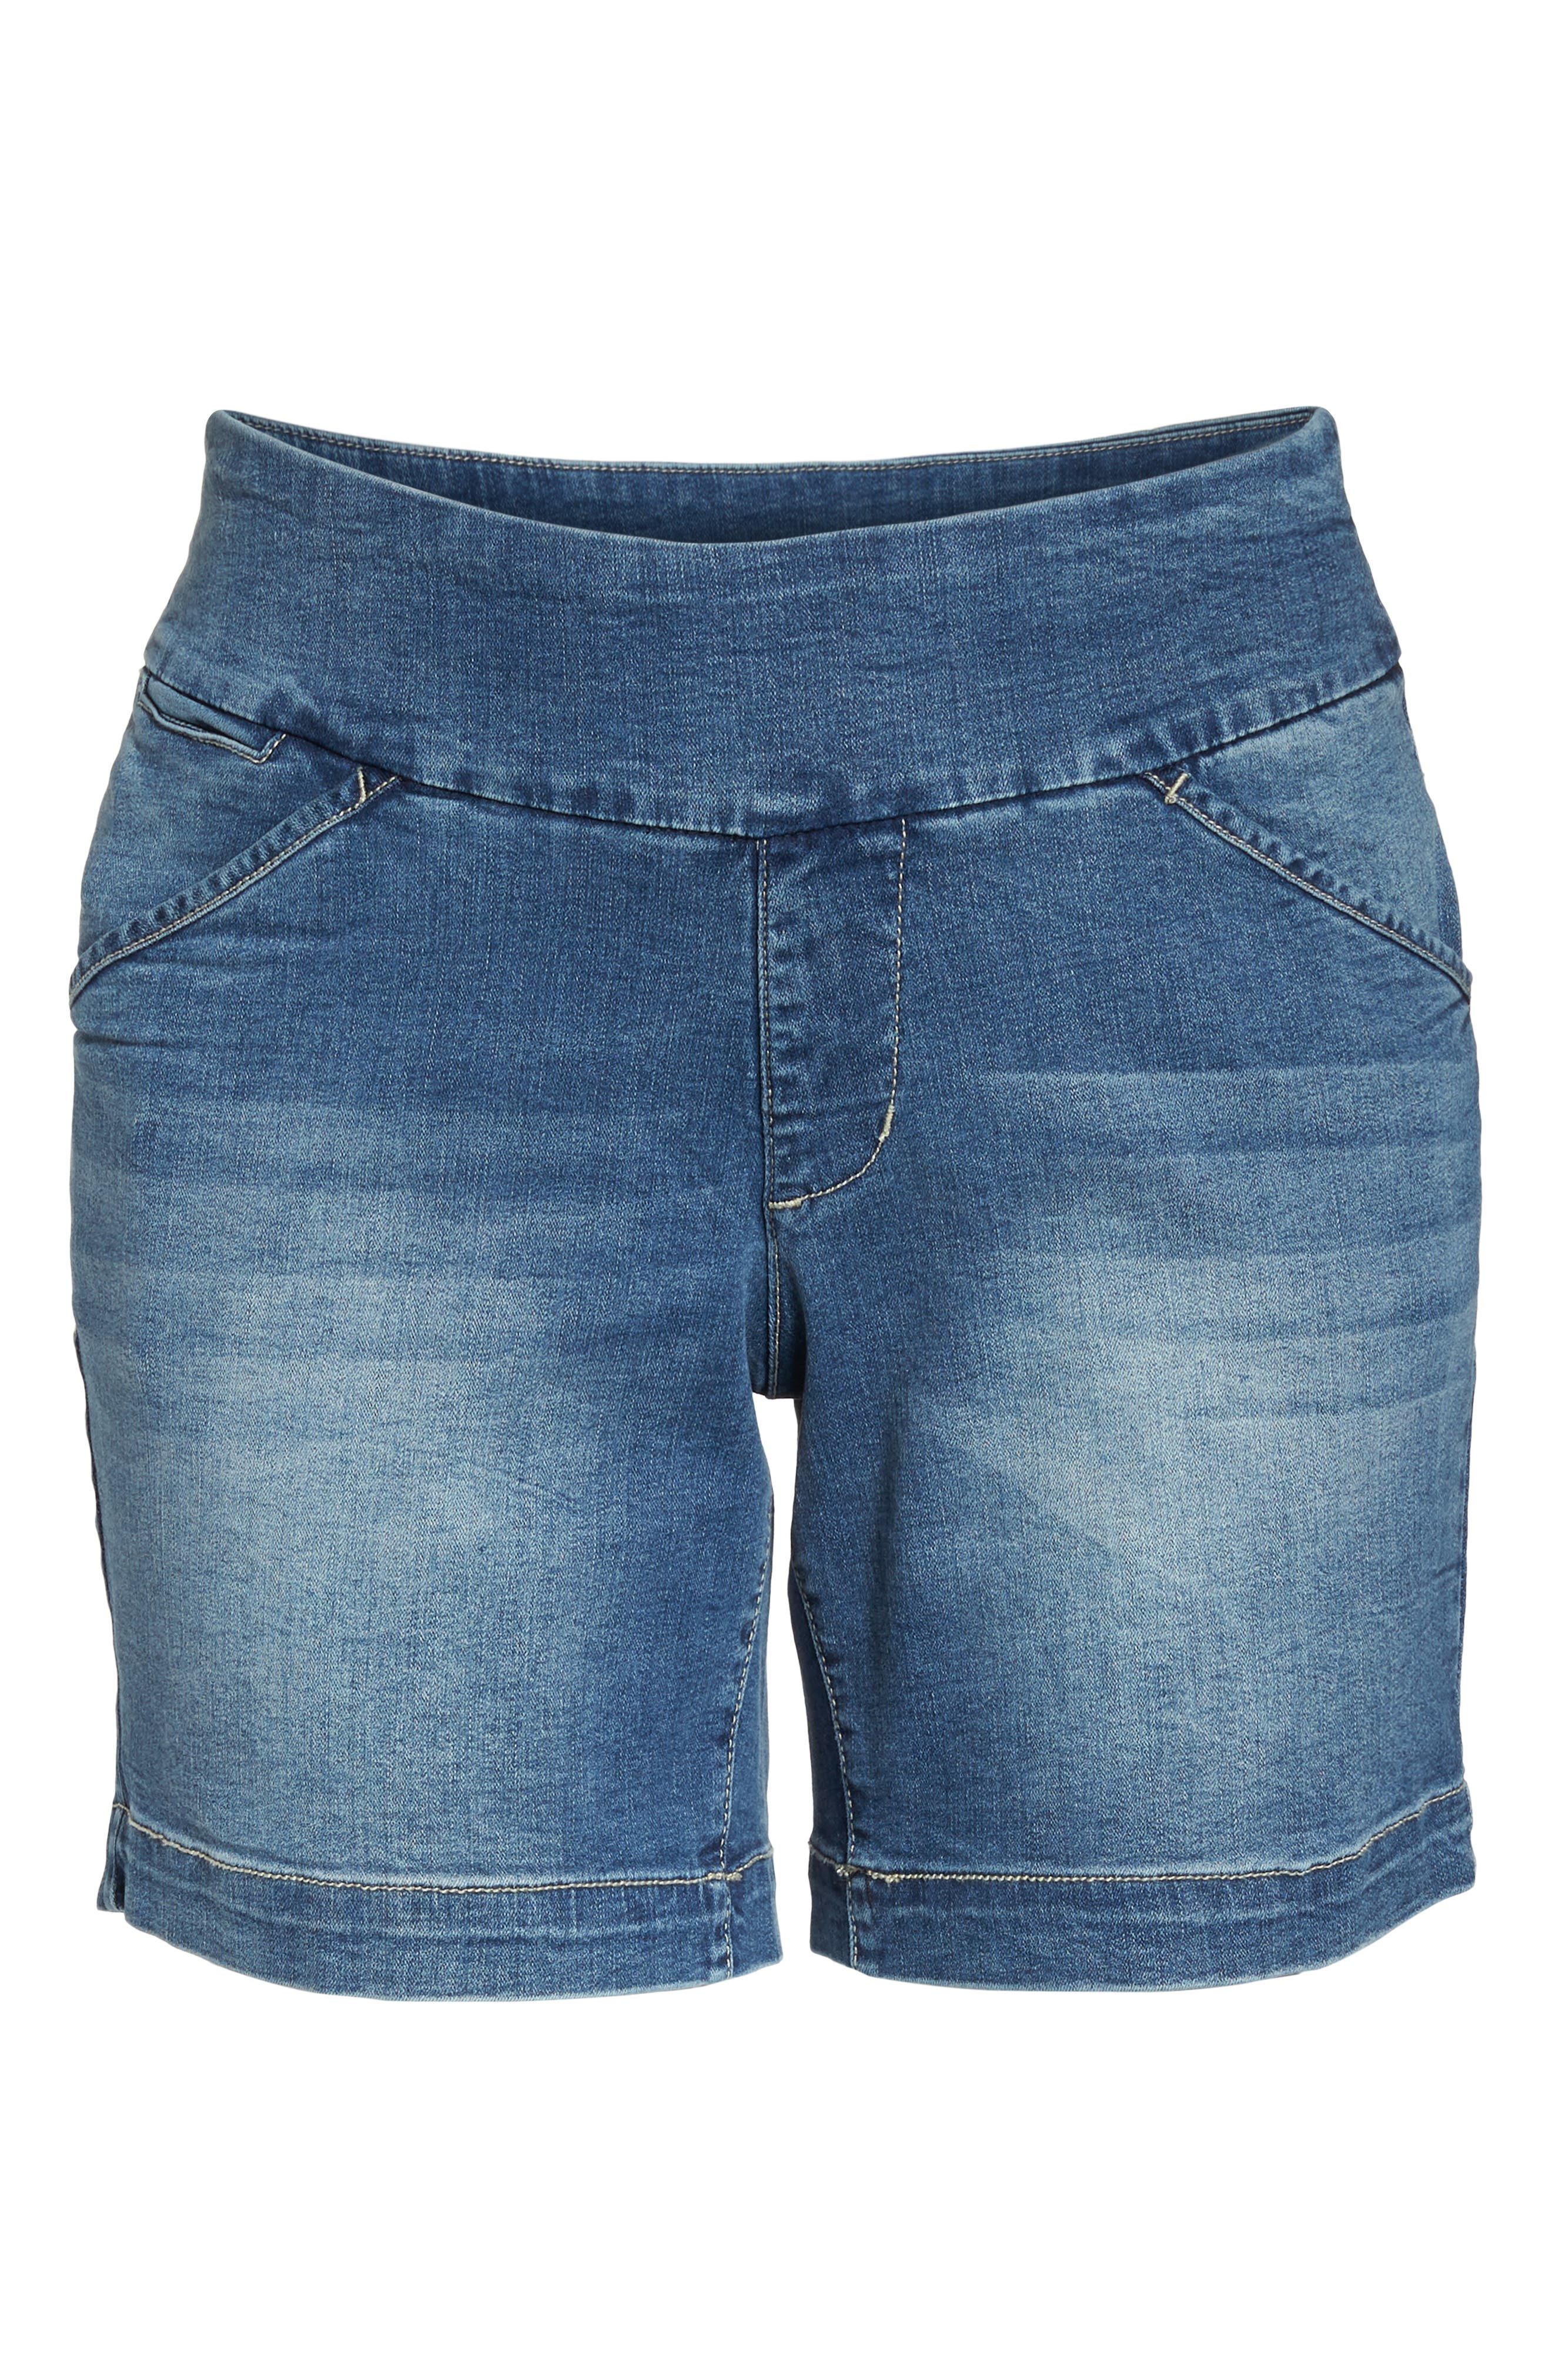 JAG JEANS,                             Ainsley Pull-On Stretch Denim Shorts,                             Alternate thumbnail 7, color,                             420